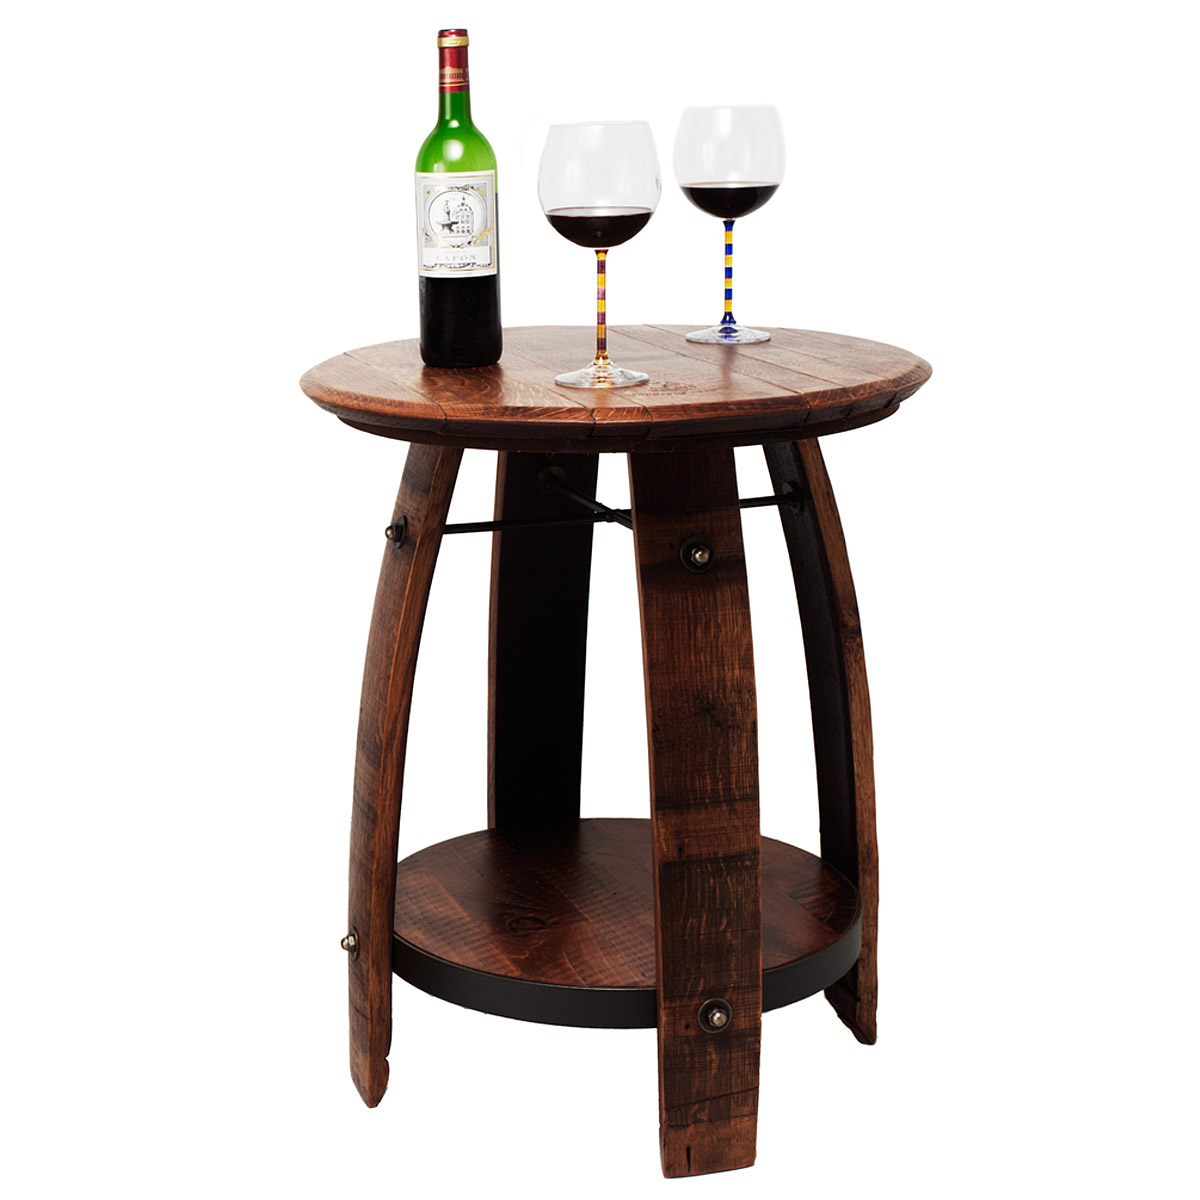 RECYCLED WINE BARREL SIDE TABLE  Recycled Wine Barrel Side Table is ...